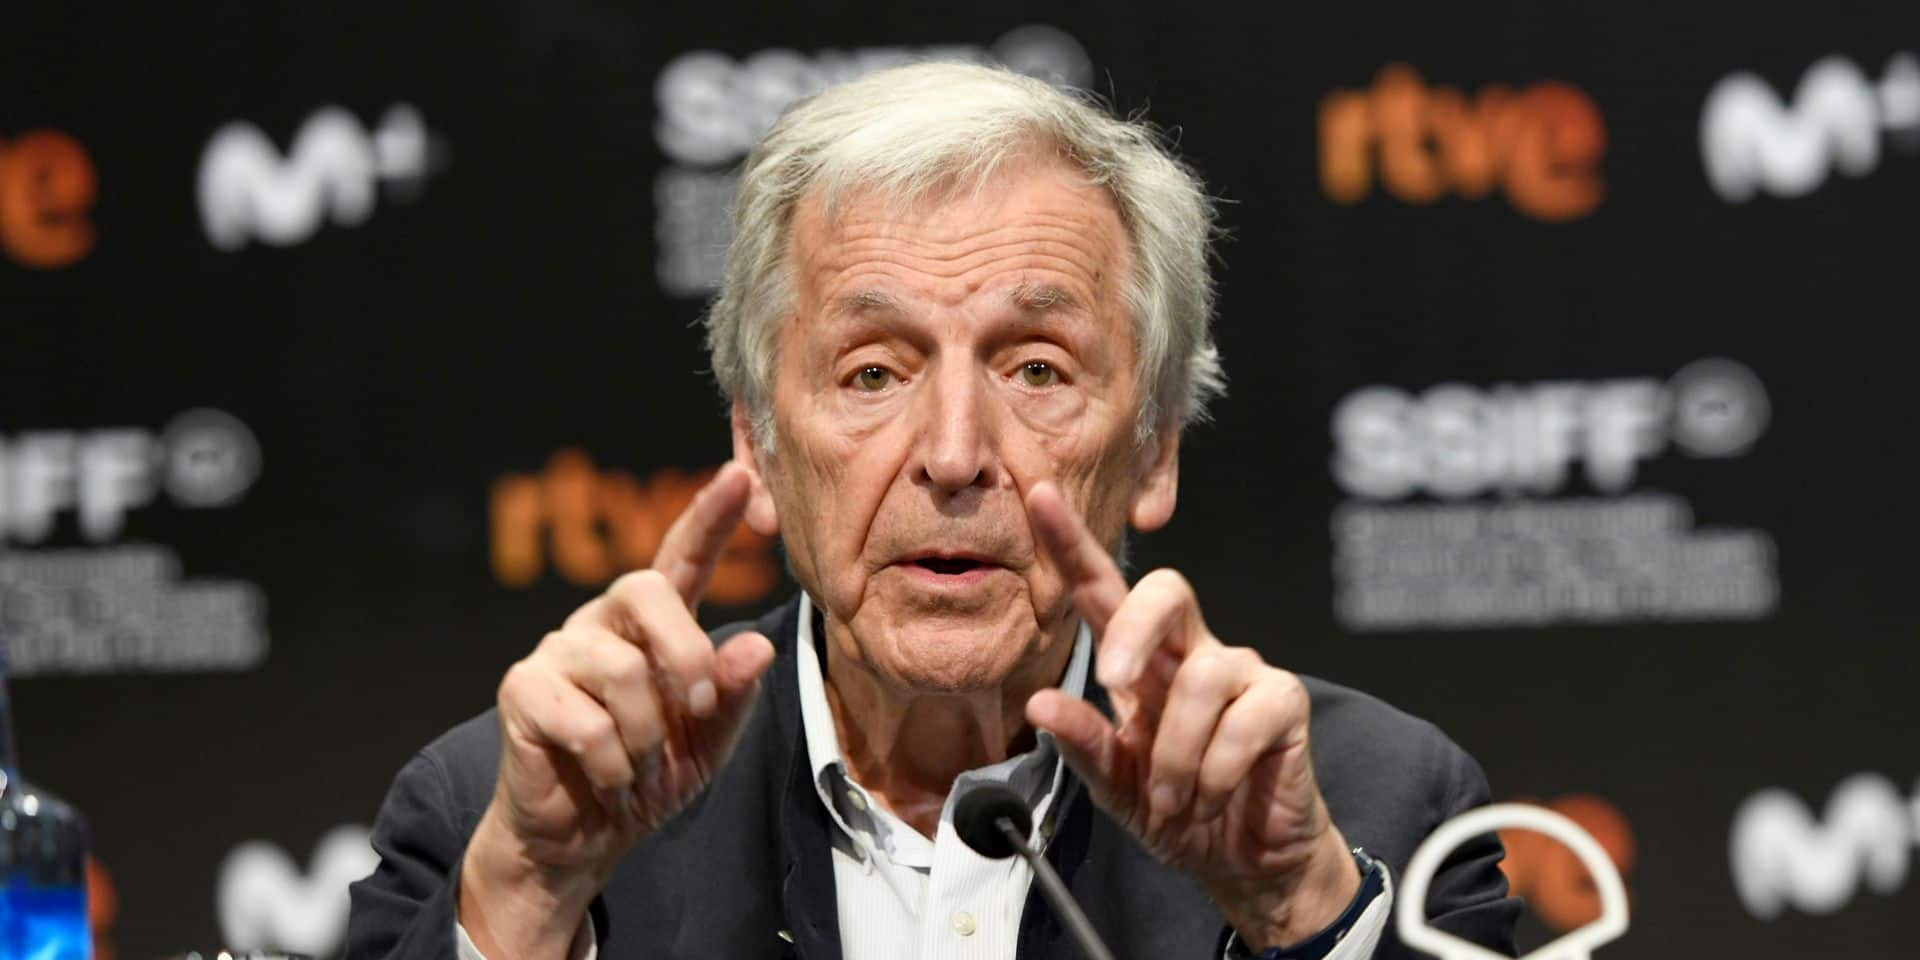 Costa-Gavras, fan de Louis de Funès